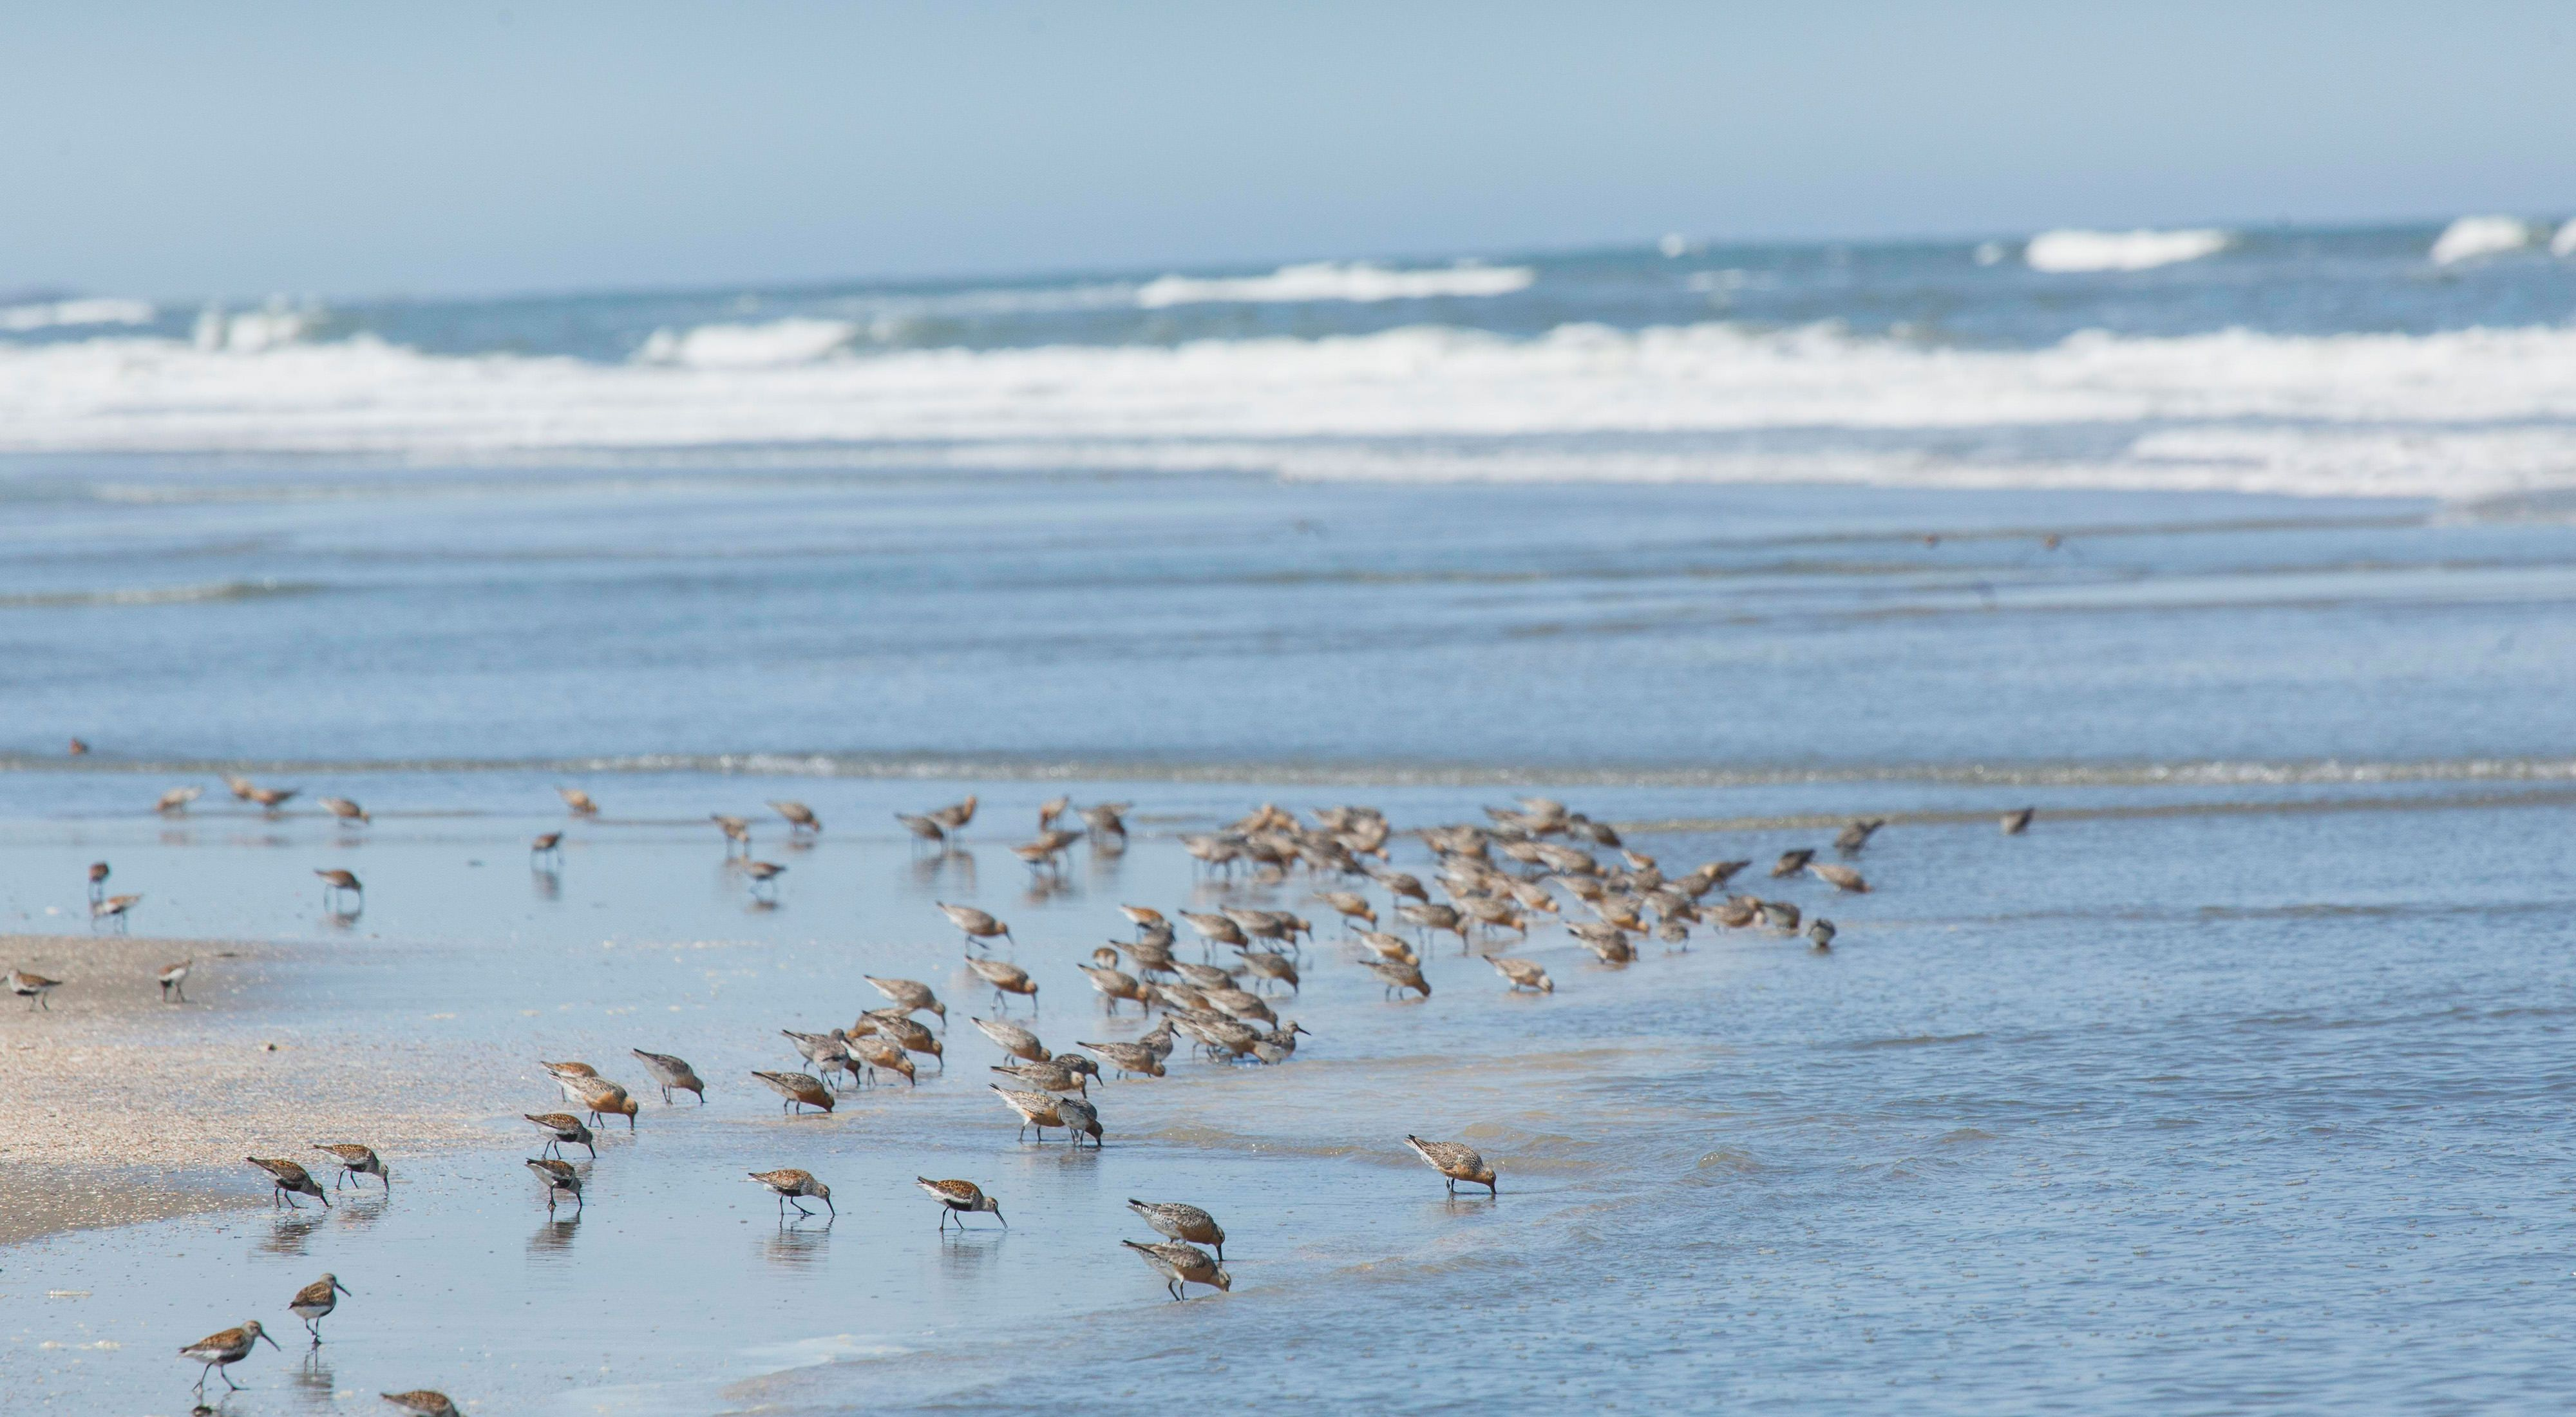 Red knots feeding along the shore of Hog Island, Virginia Coast Reserve.